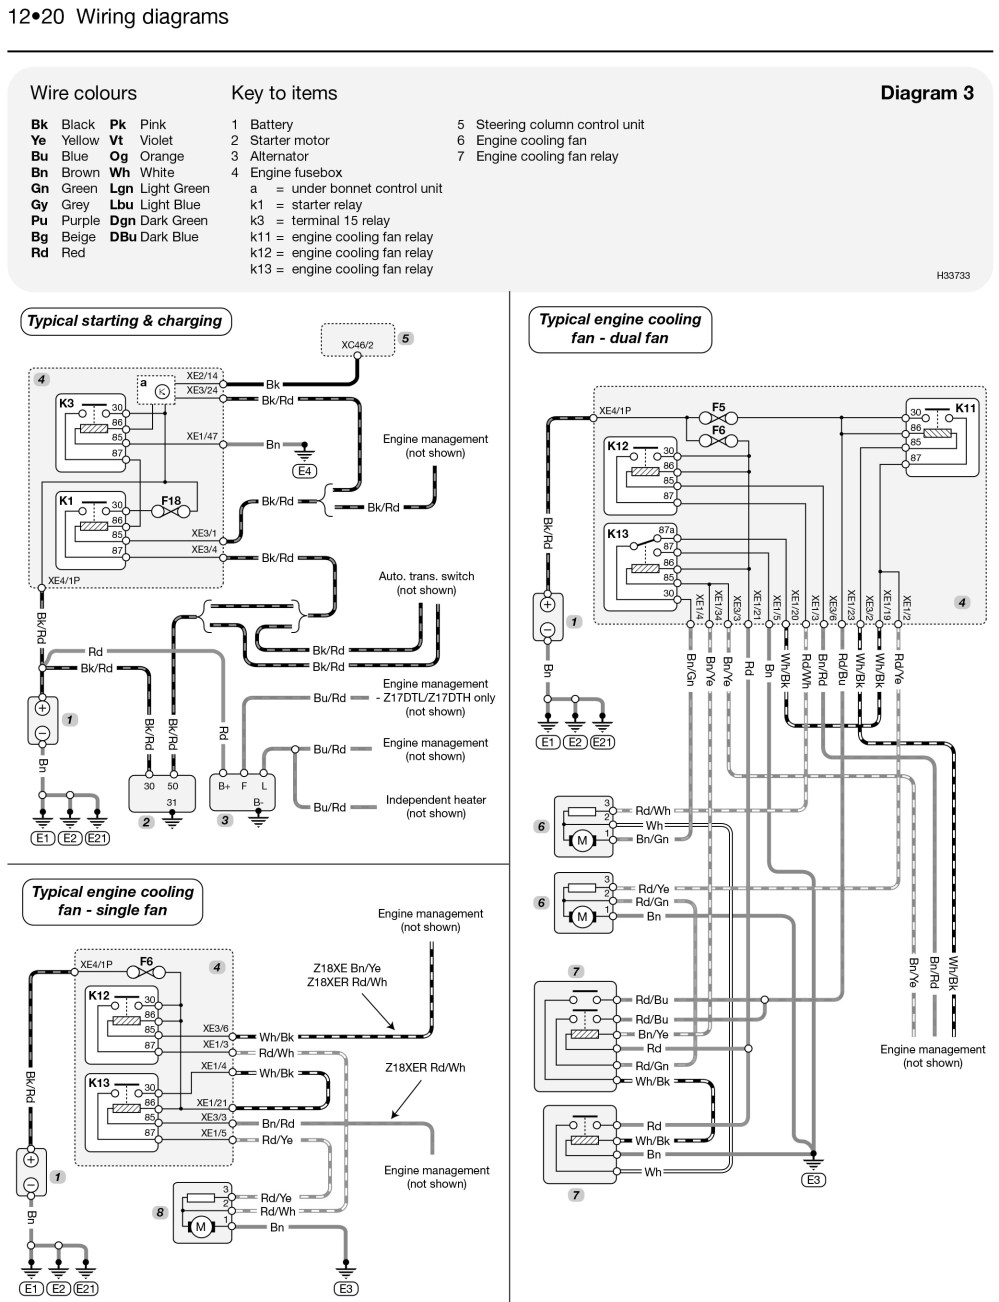 medium resolution of astra g aircon wiring diagram wiring diagram database vauxhall astra g wiring diagram